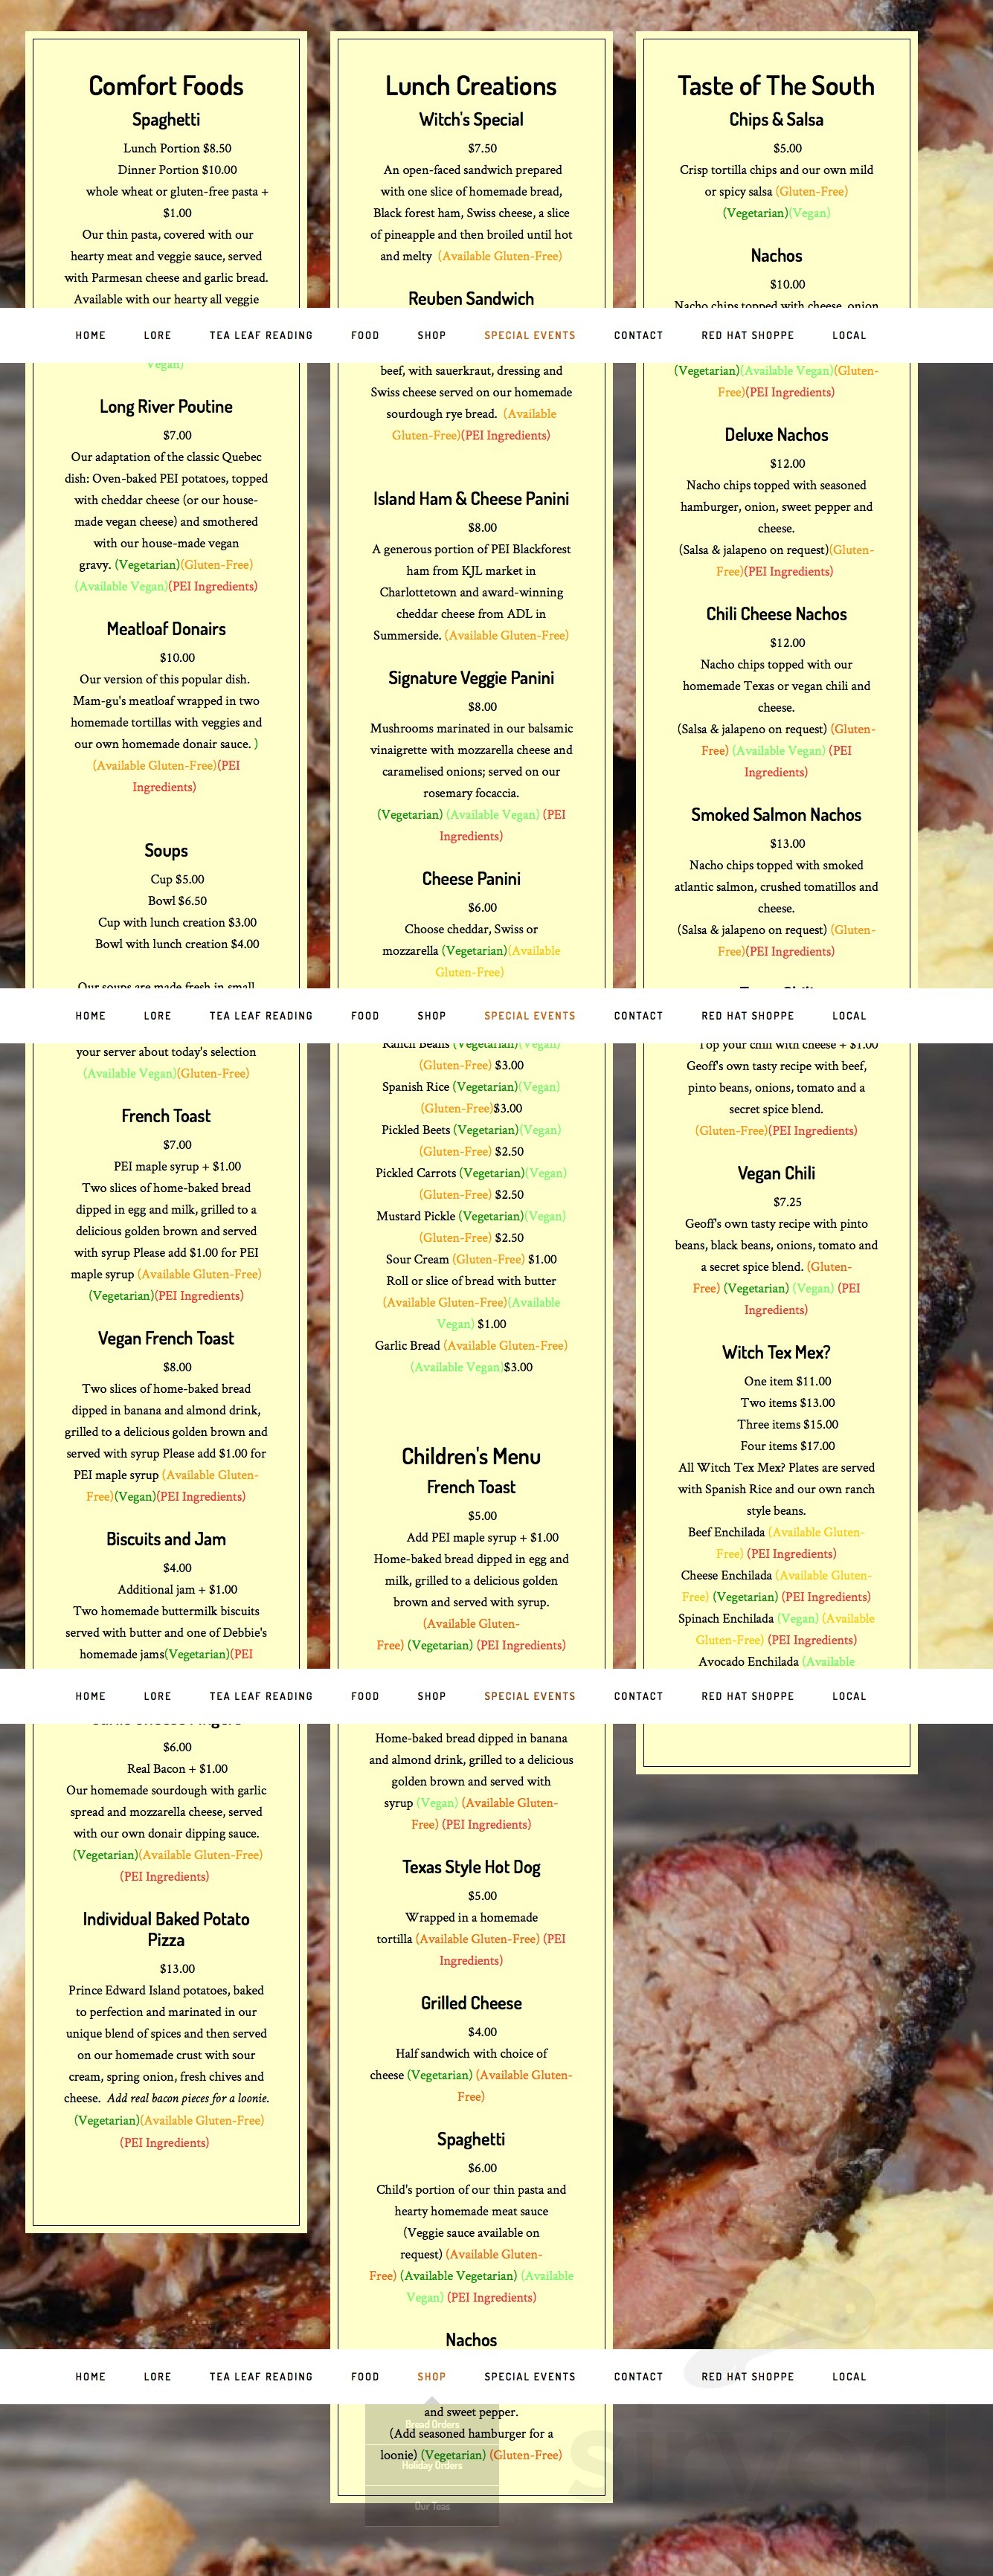 Menu for Kitchen Witch Tea Room & Country Crafts (The) in Kensington